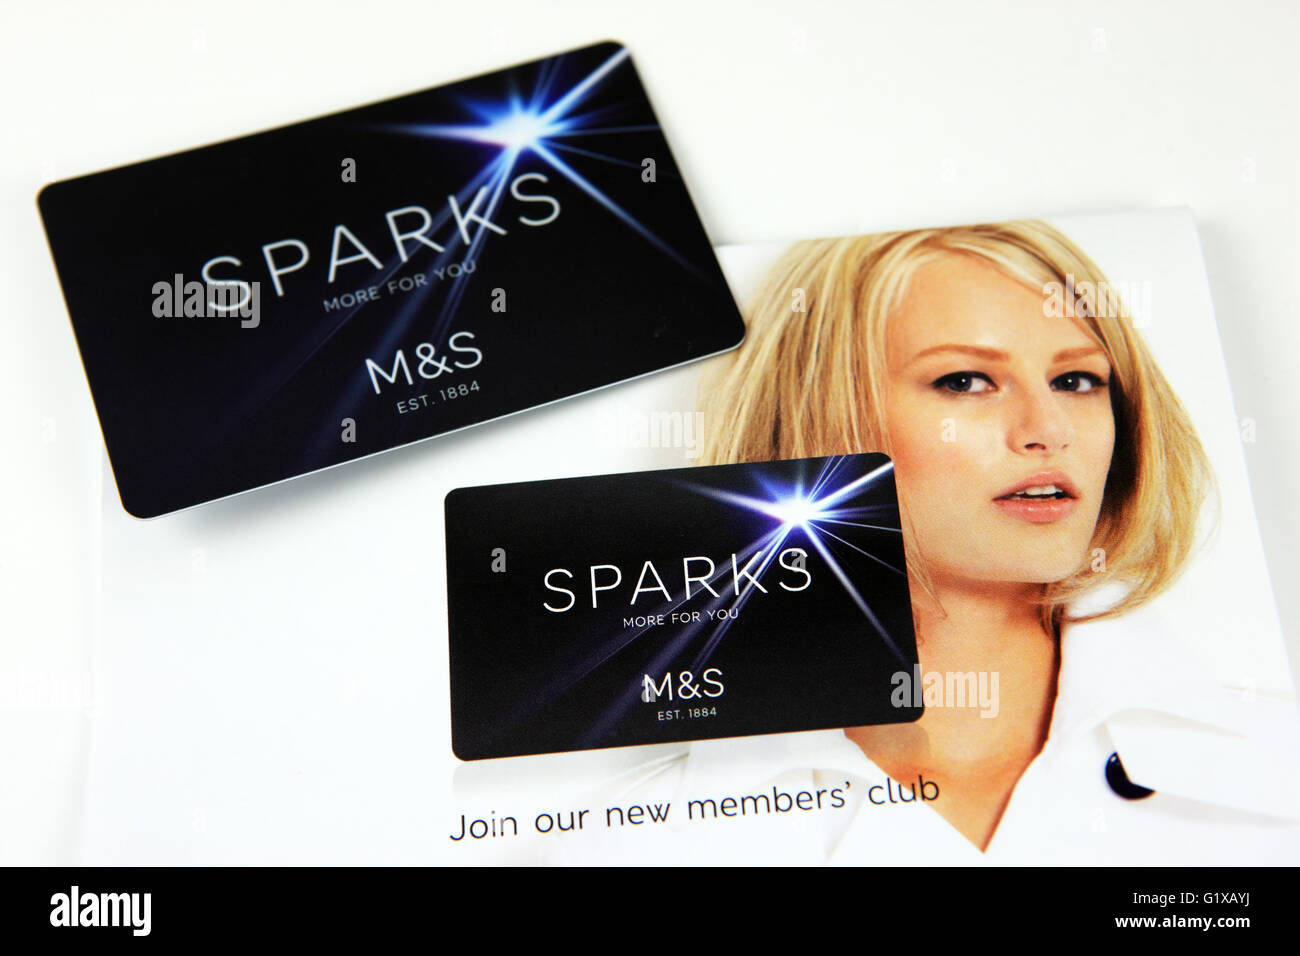 Marks & Spencer's Sparks card and promotional literature - Stock Image